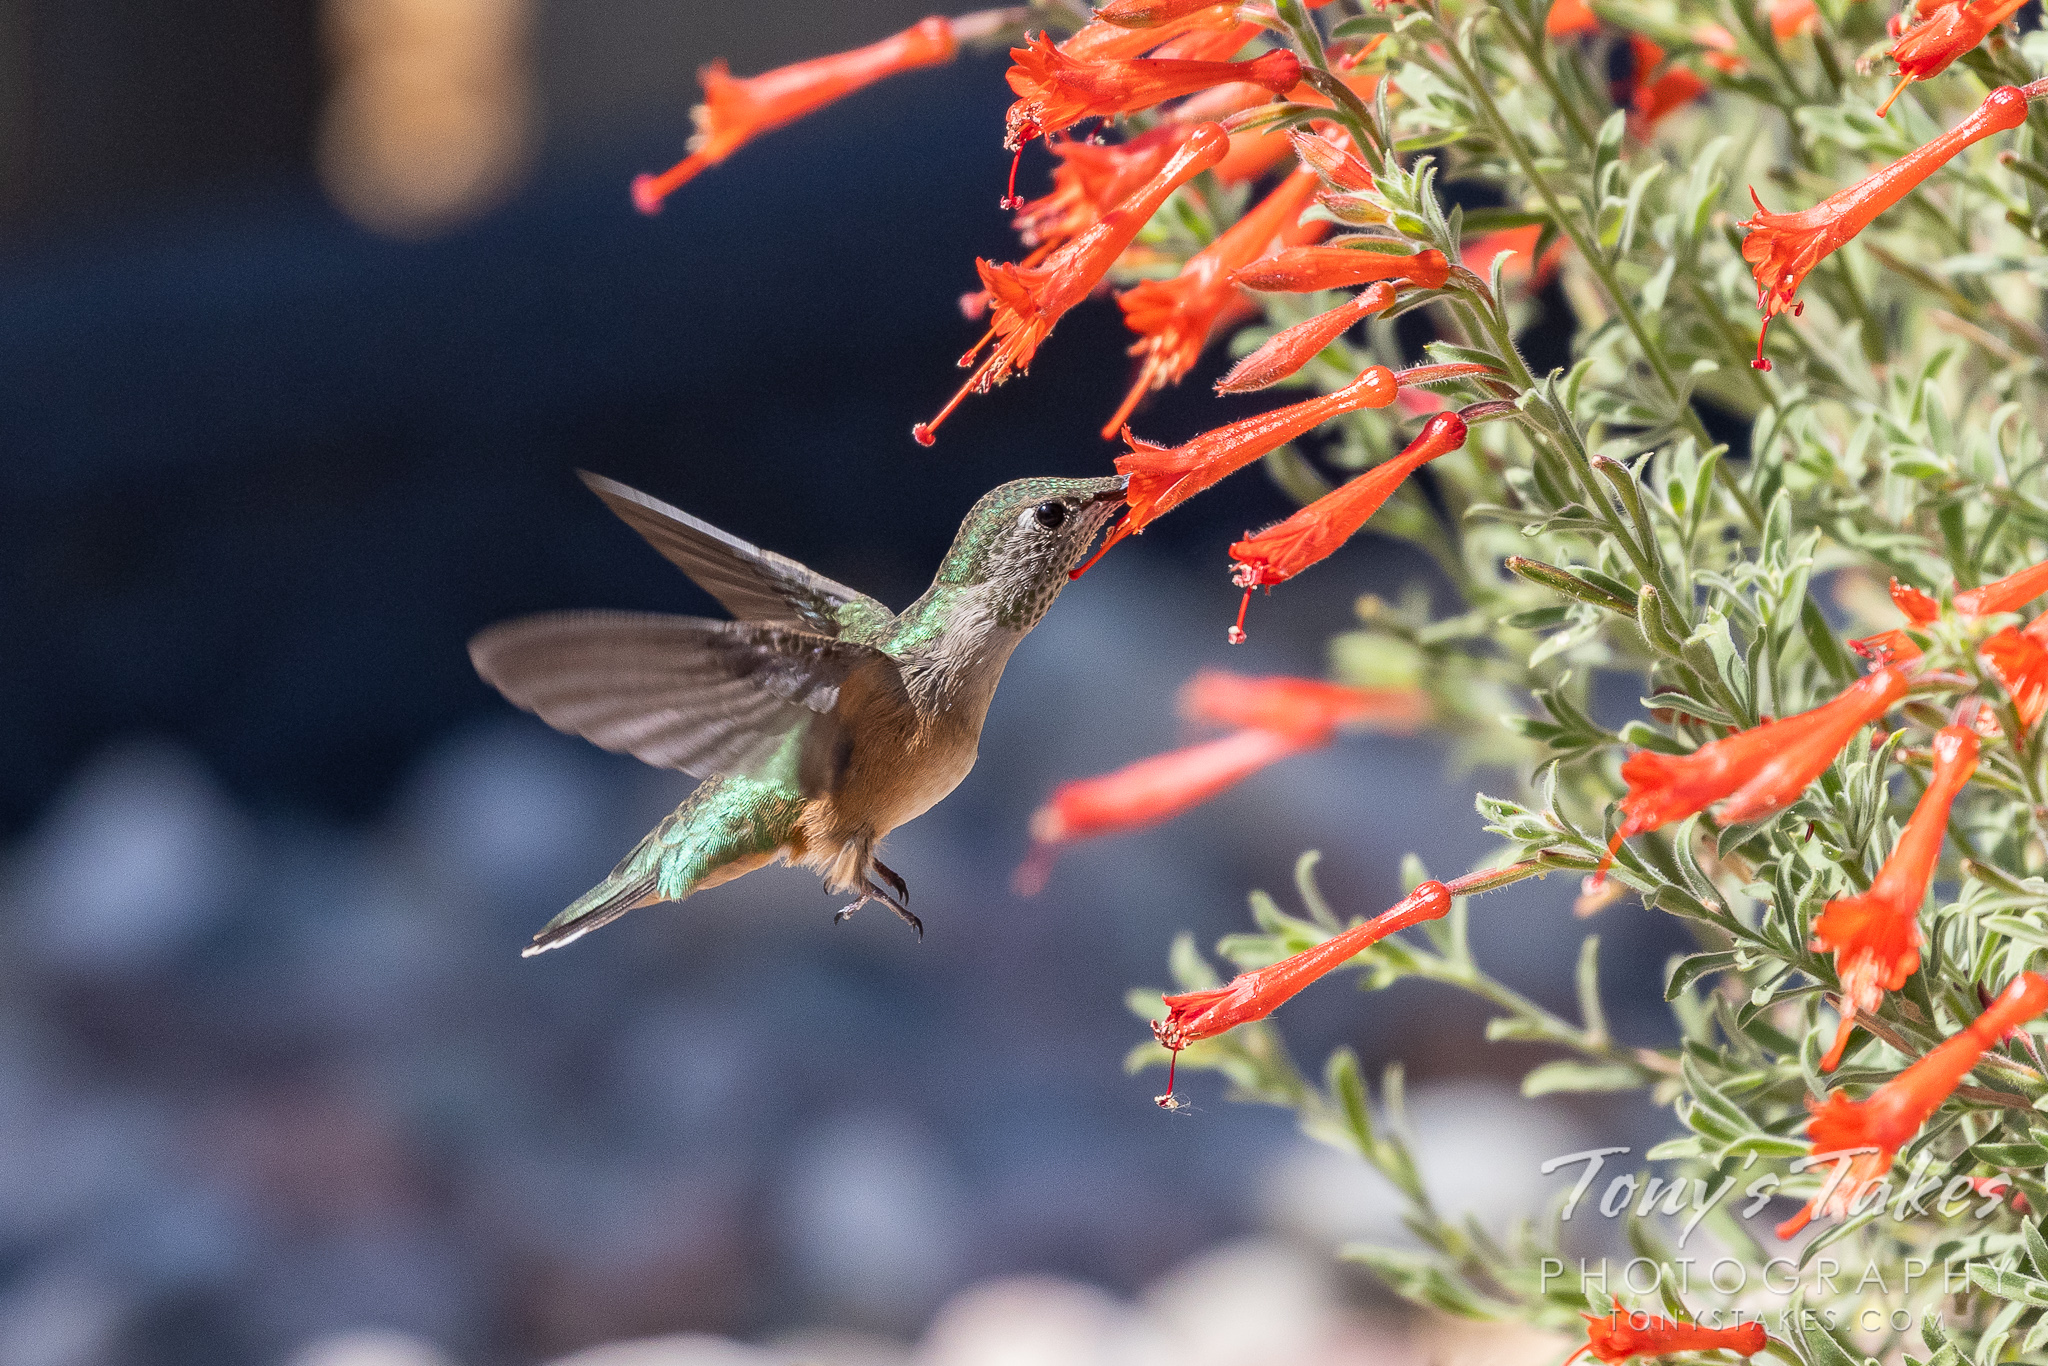 A broad-tailed hummingbird enjoys a meal from a flower. (© Tony's Takes)